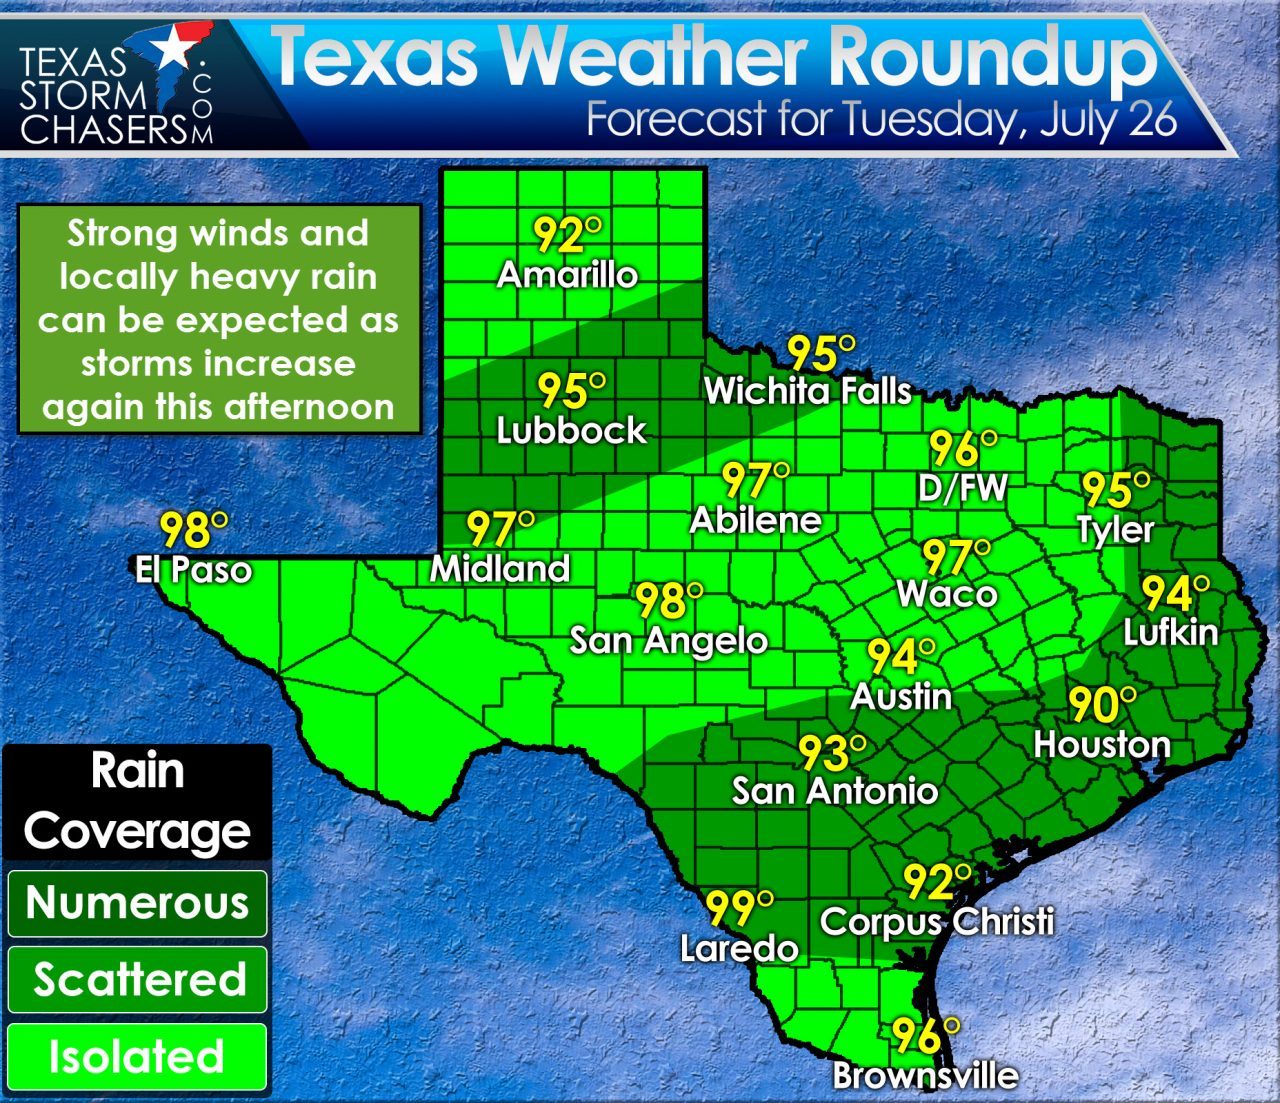 Map Of Texas Storms.More Popup Storms This Afternoon Texas Storm Chasers